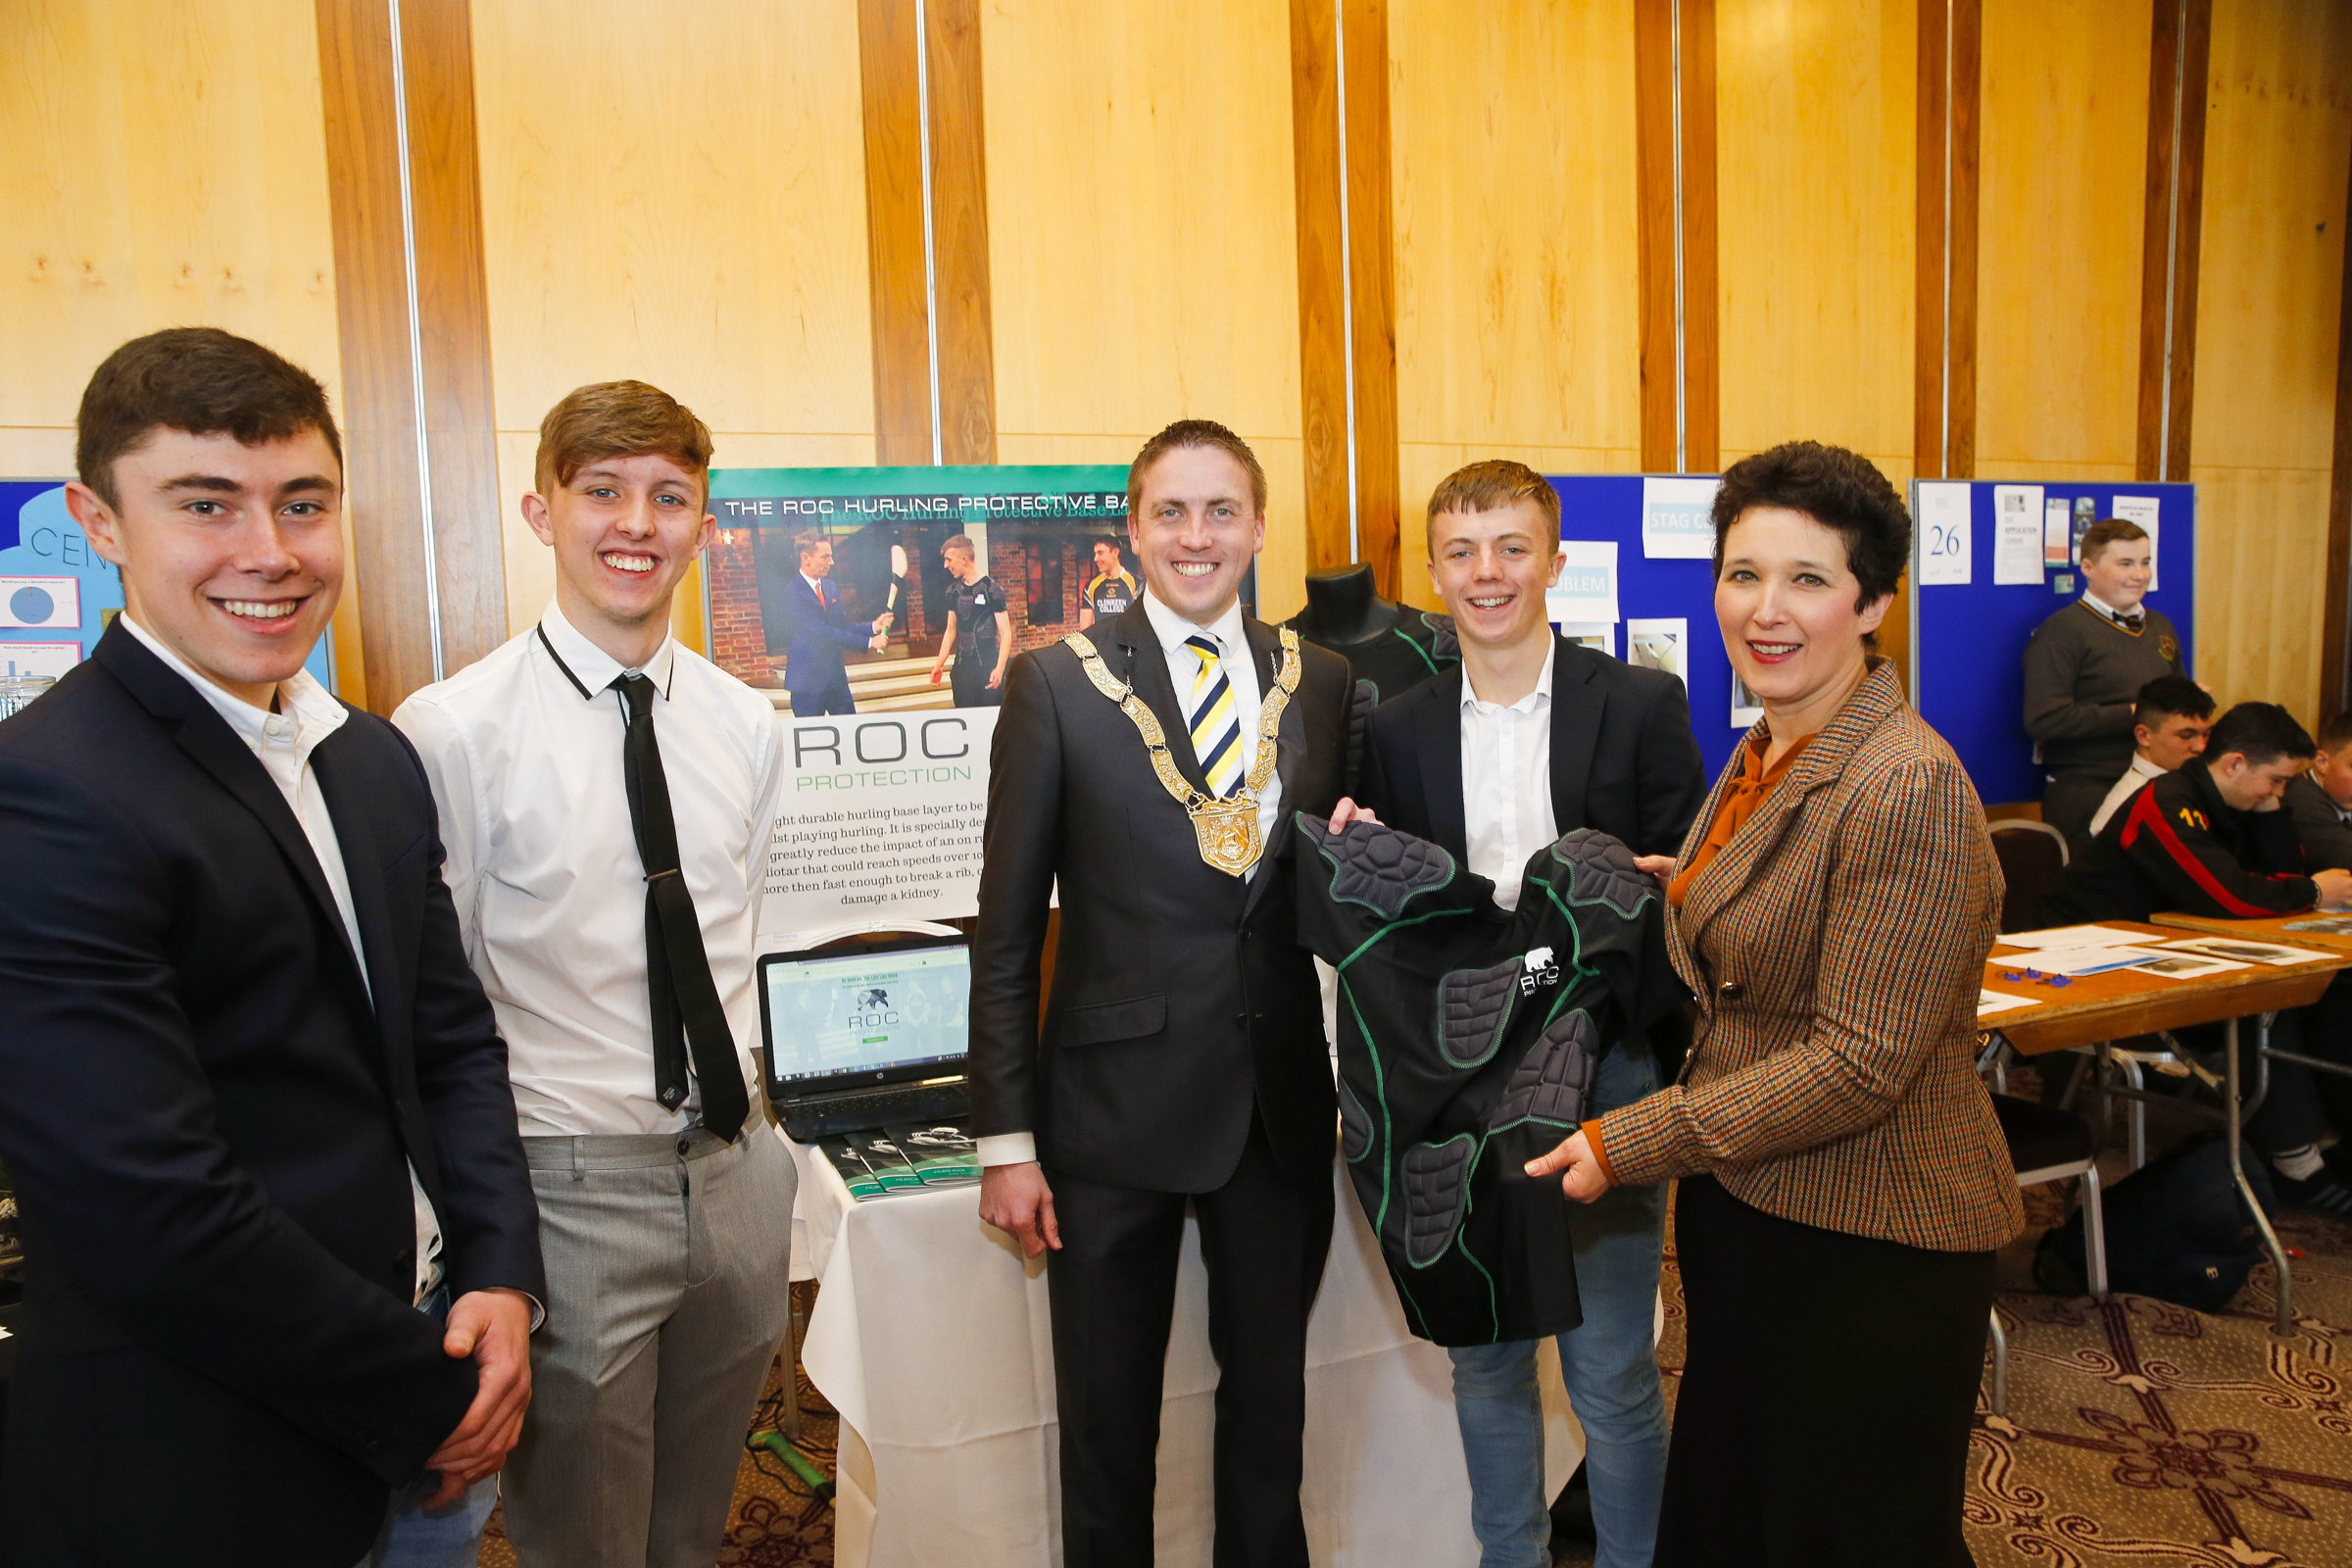 ROC Student Enterprise Award Winners